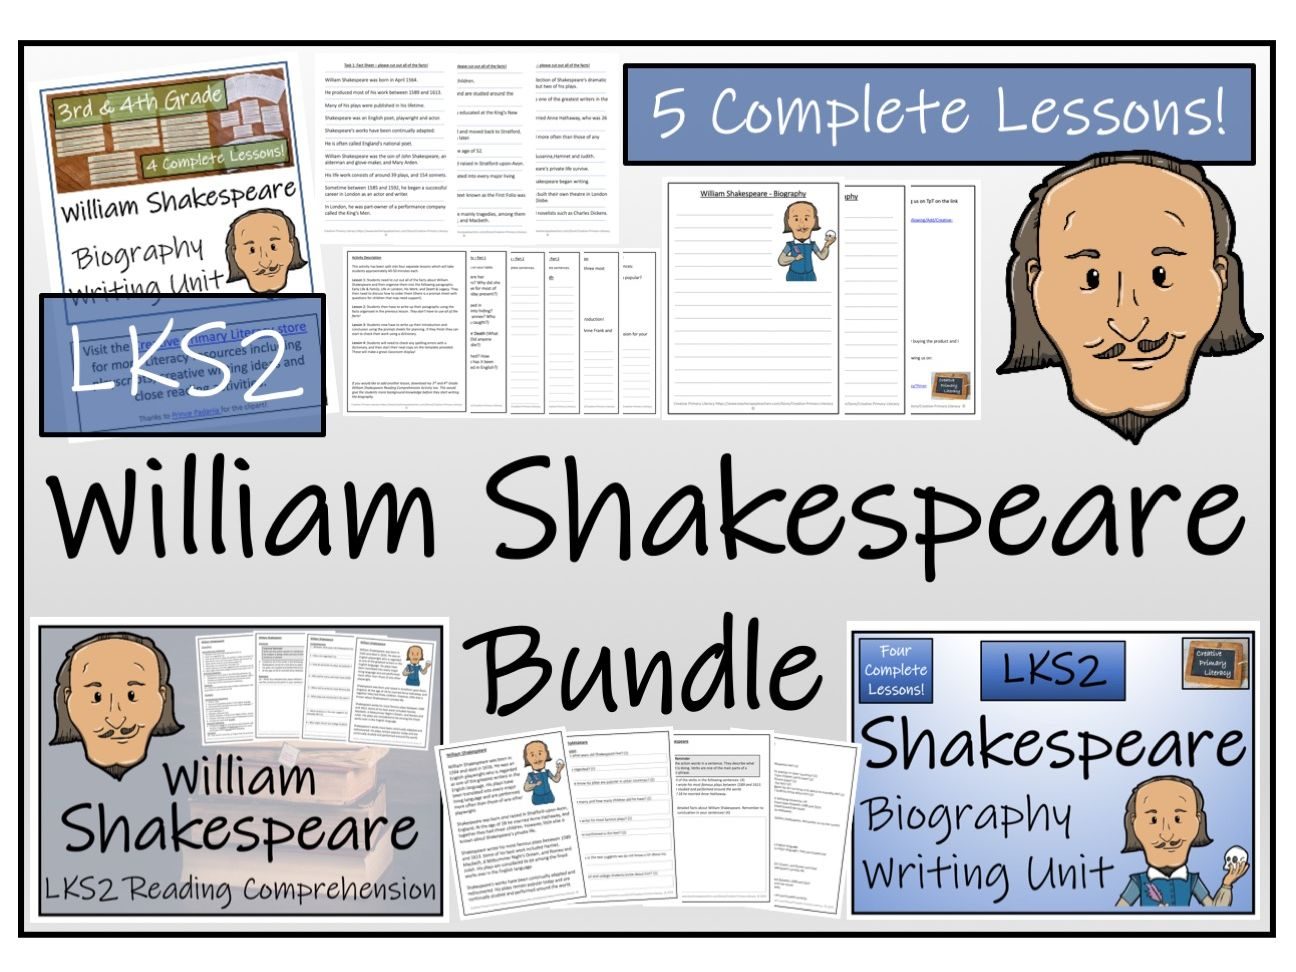 LKS2 Literacy - William Shakespeare Reading Comprehension & Biography Bundle